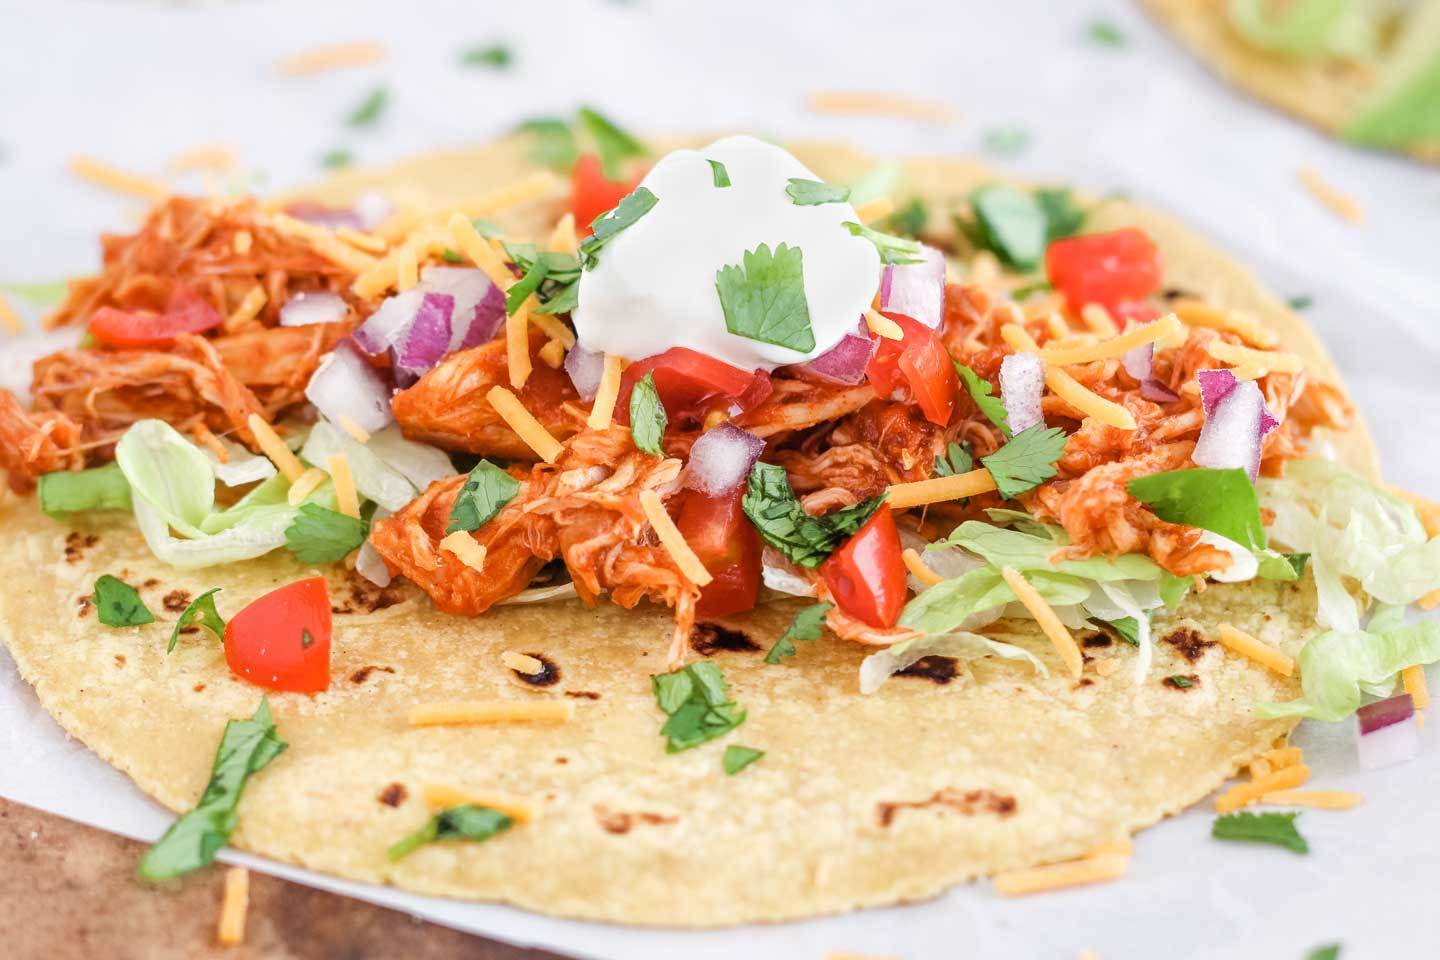 Closeup of one crock pot chicken taco, laid open flat with lots of toppings sprinkled over the chicken, like lettuce, tomatoes, cheese and sour cream.